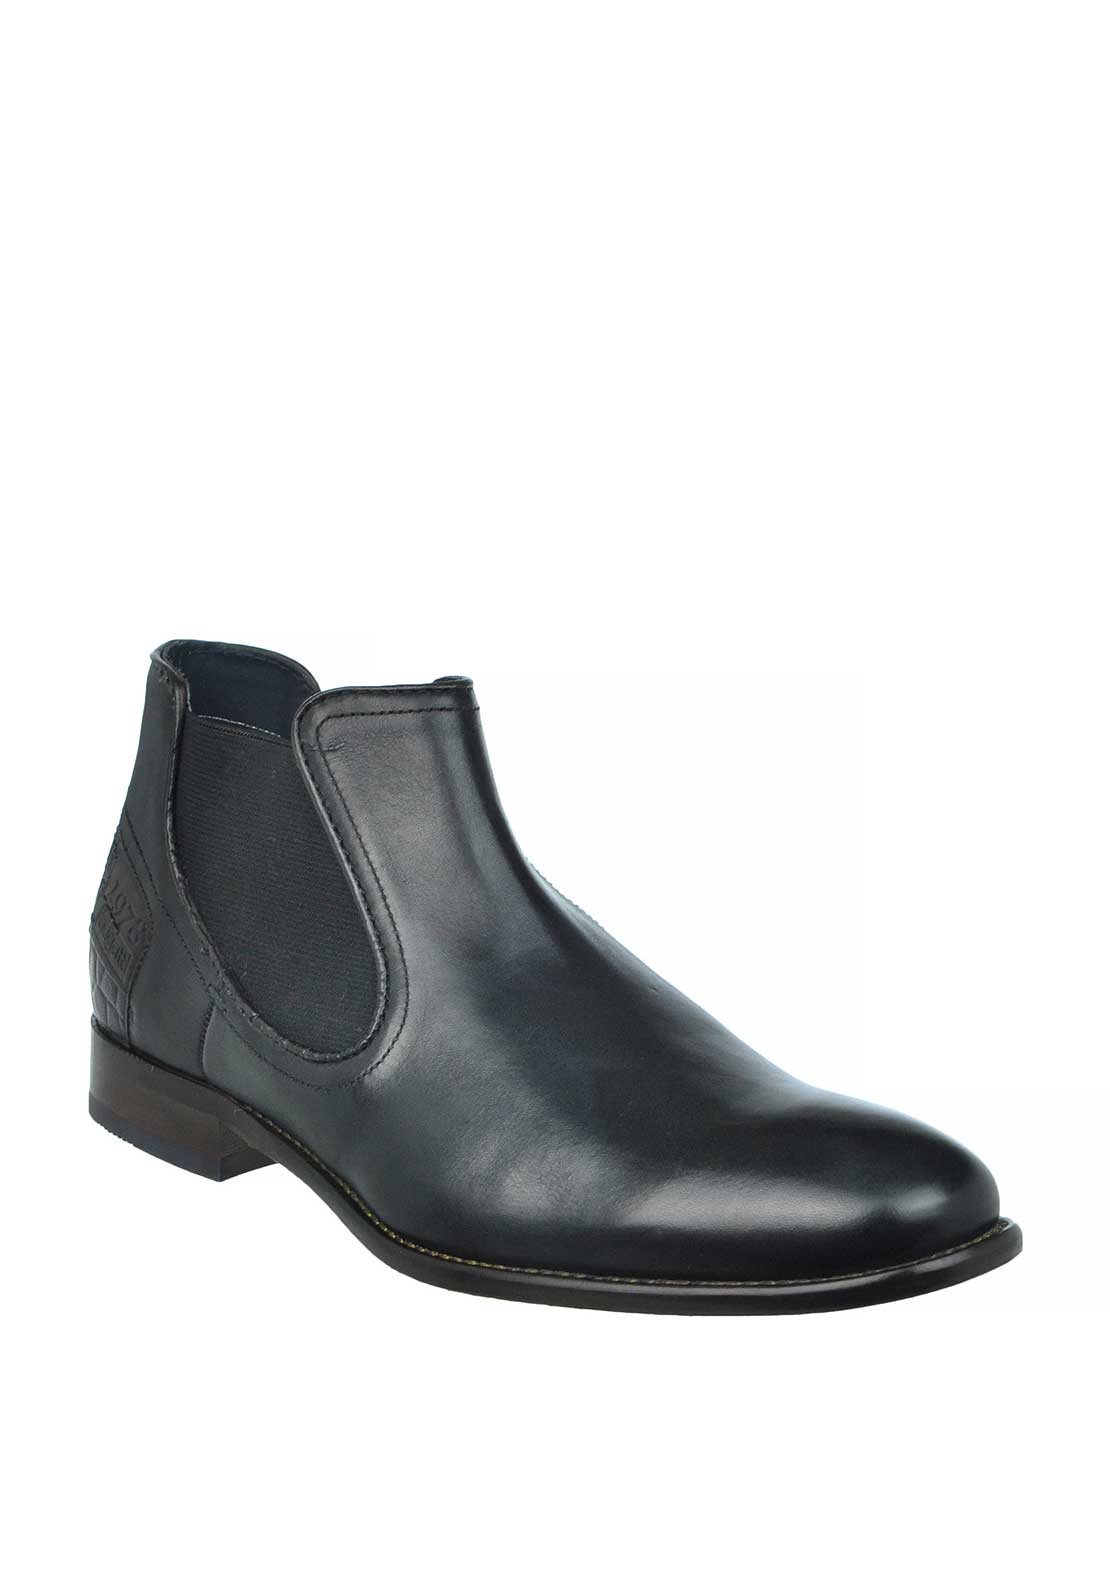 Bugatti Leather Chelsea Boots, Black